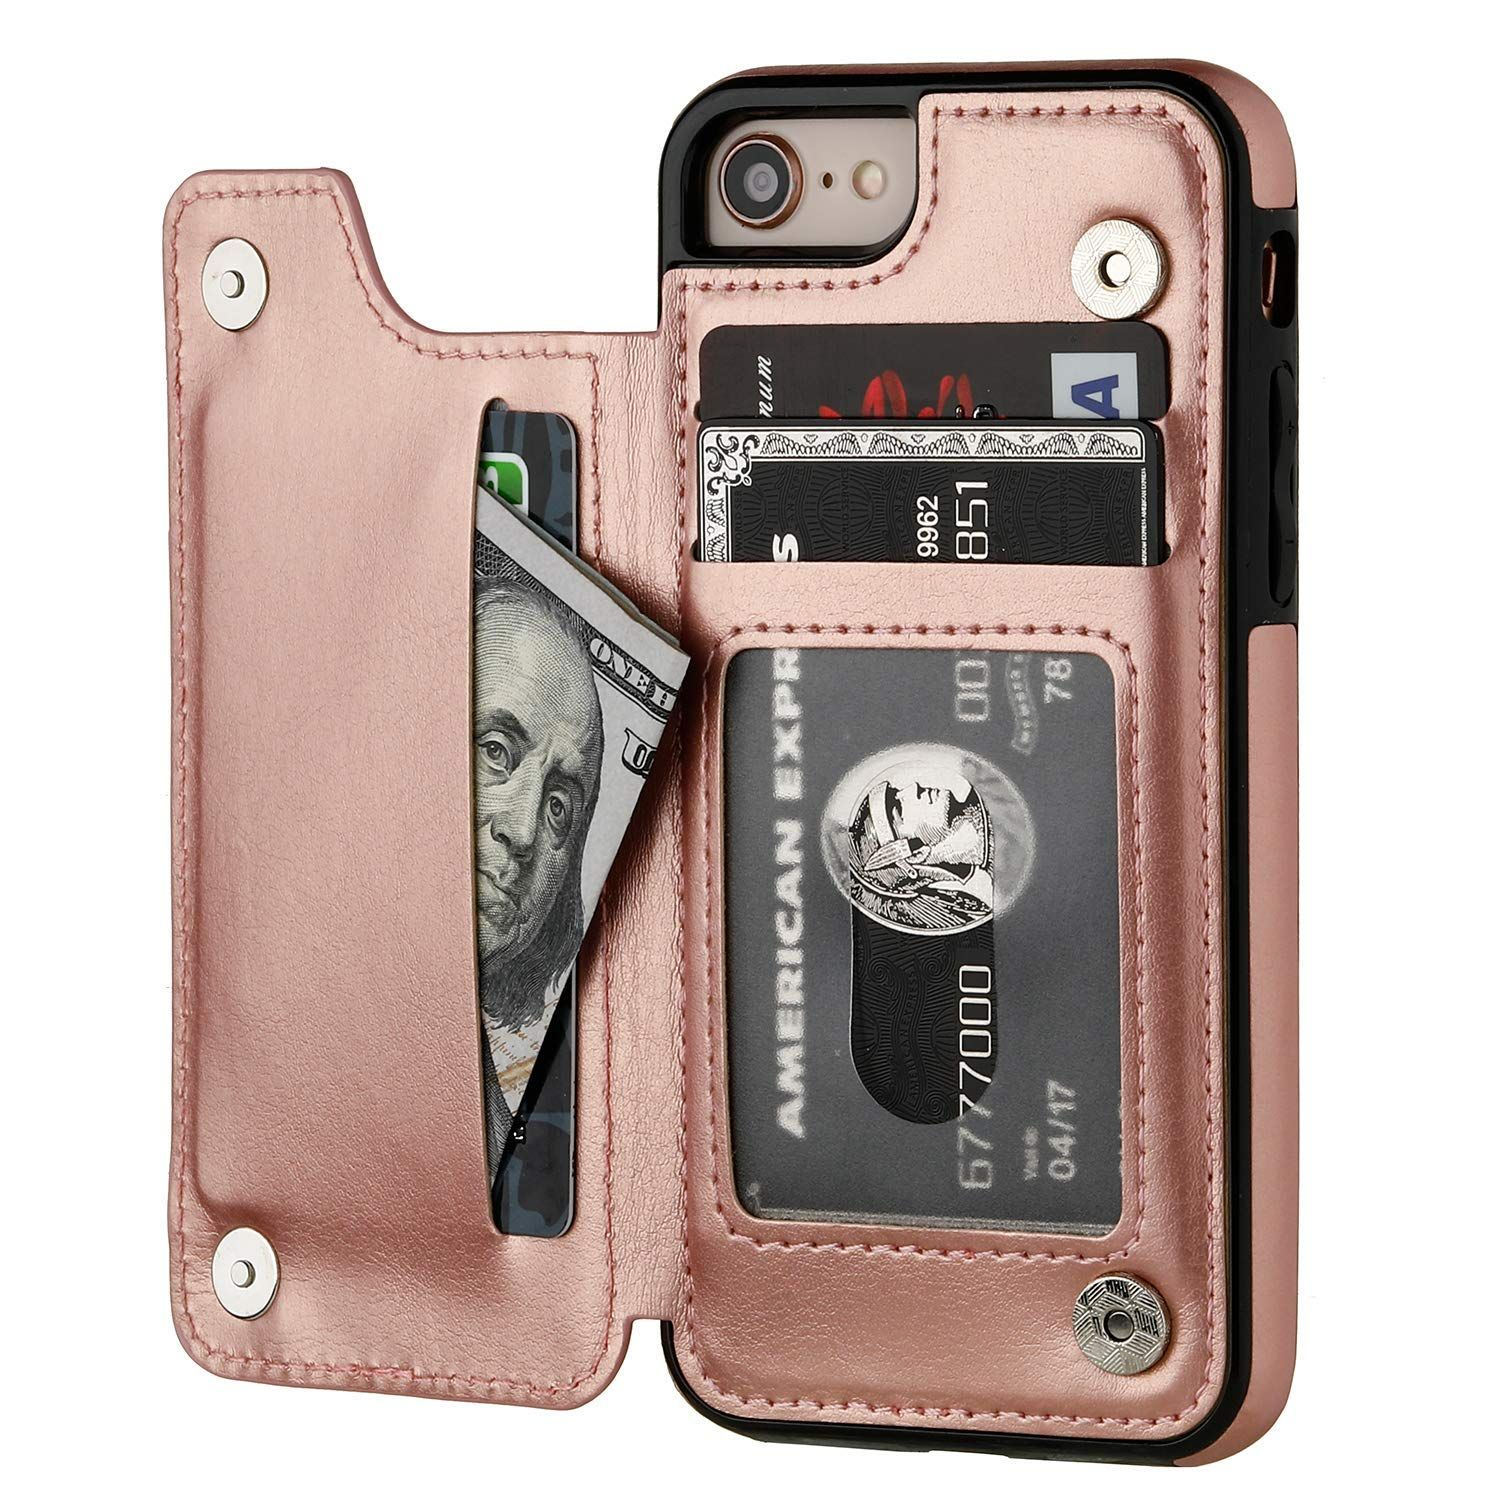 premium selection cdbc8 38c8e Amazon.com: iPhone 8 Wallet Case with Card Holder,OT ONETOP iPhone 7 ...